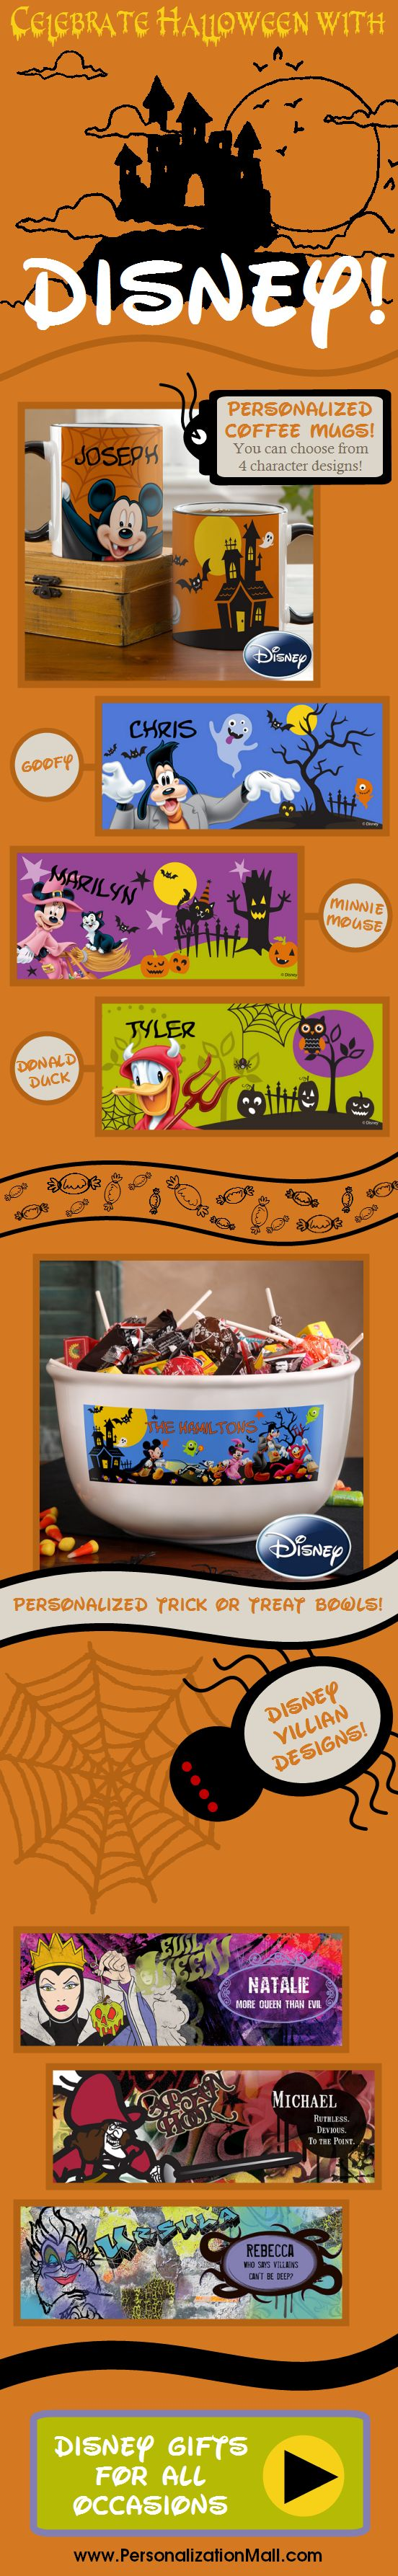 Disney Fans will LOVE this! They're all your favorite Characters dressed up for Halloween! This site has tons of unique Disney Gifts that you can personalize - it's so cool you have to check out this site! #Disney #Mickey: Disney Gifts, Characters Dressed, Disney Fans, Gift Ideas, Disney Mickey, Holiday Fun, Disney Pixar, Pixar Characters